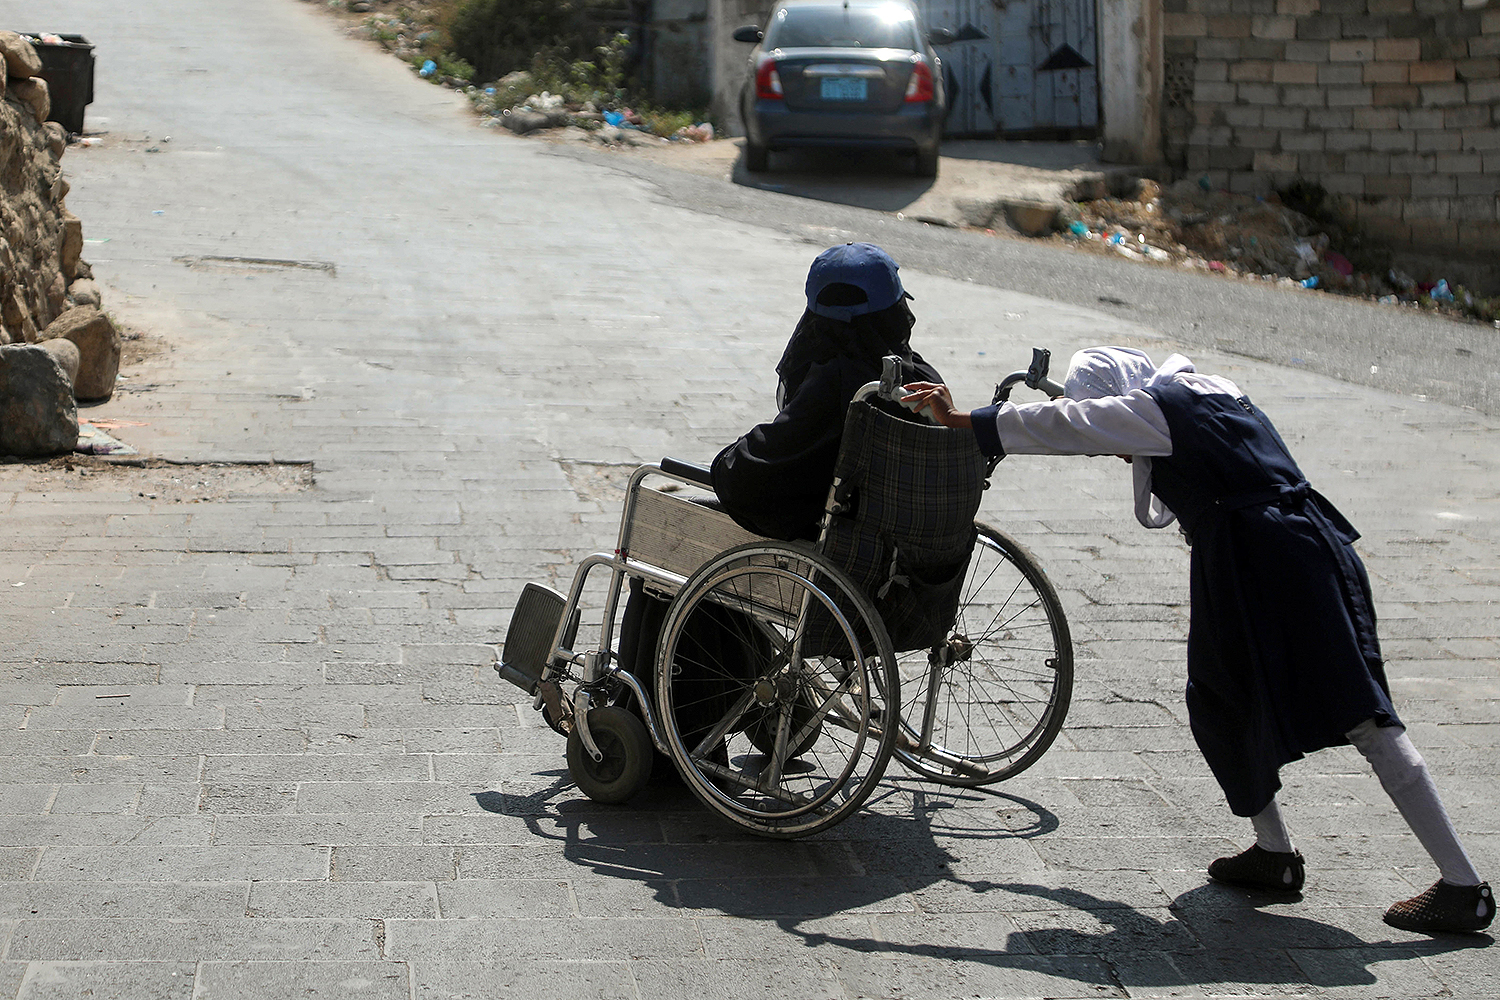 A child of Arwa Naji, disabled after sustaining injuries during a Saudi-led coalition bombardment on her neighborhood in 2015, pushes her mother's wheelchair outside an abandoned house in Taez, Yemen, on Feb. 13. AHMAD AL-BASHA/AFP via Getty Images